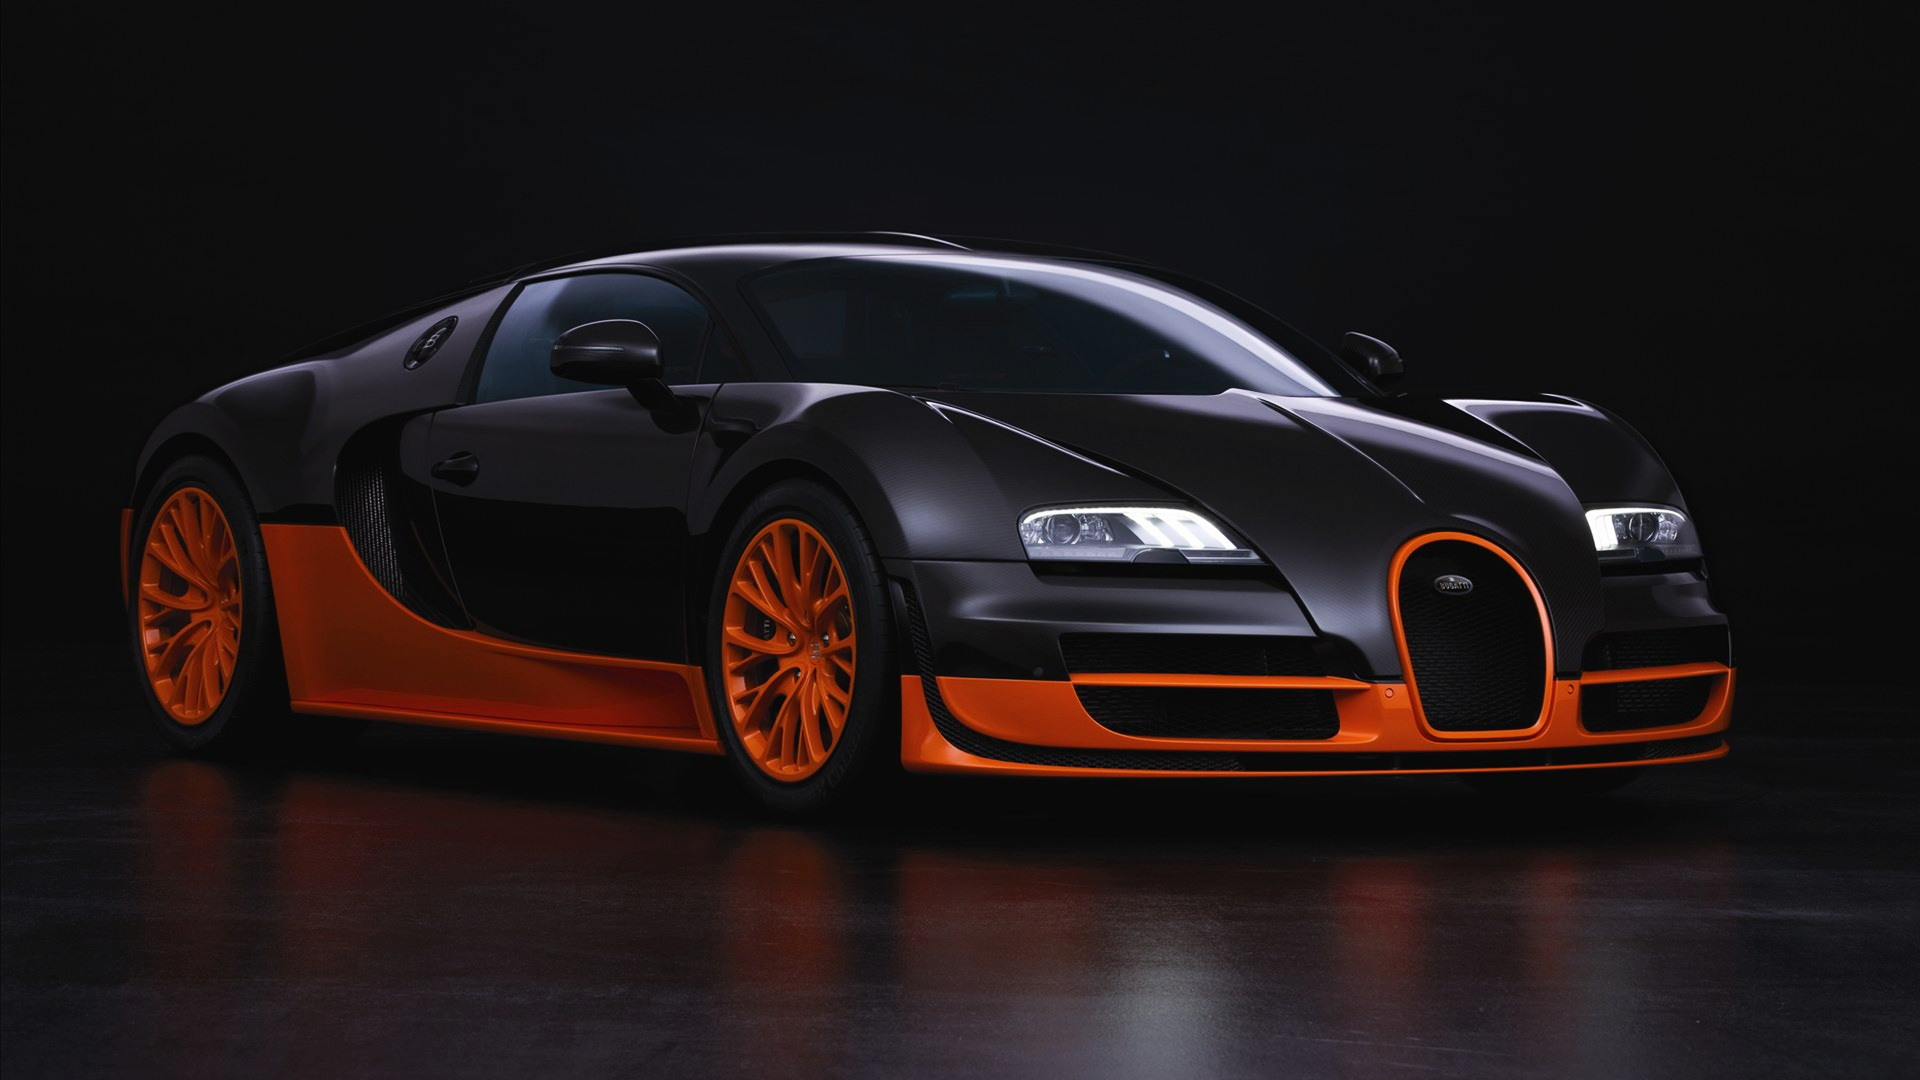 wallpaper of car the most expensive sports car bugatti veyron free wallpaper world. Black Bedroom Furniture Sets. Home Design Ideas